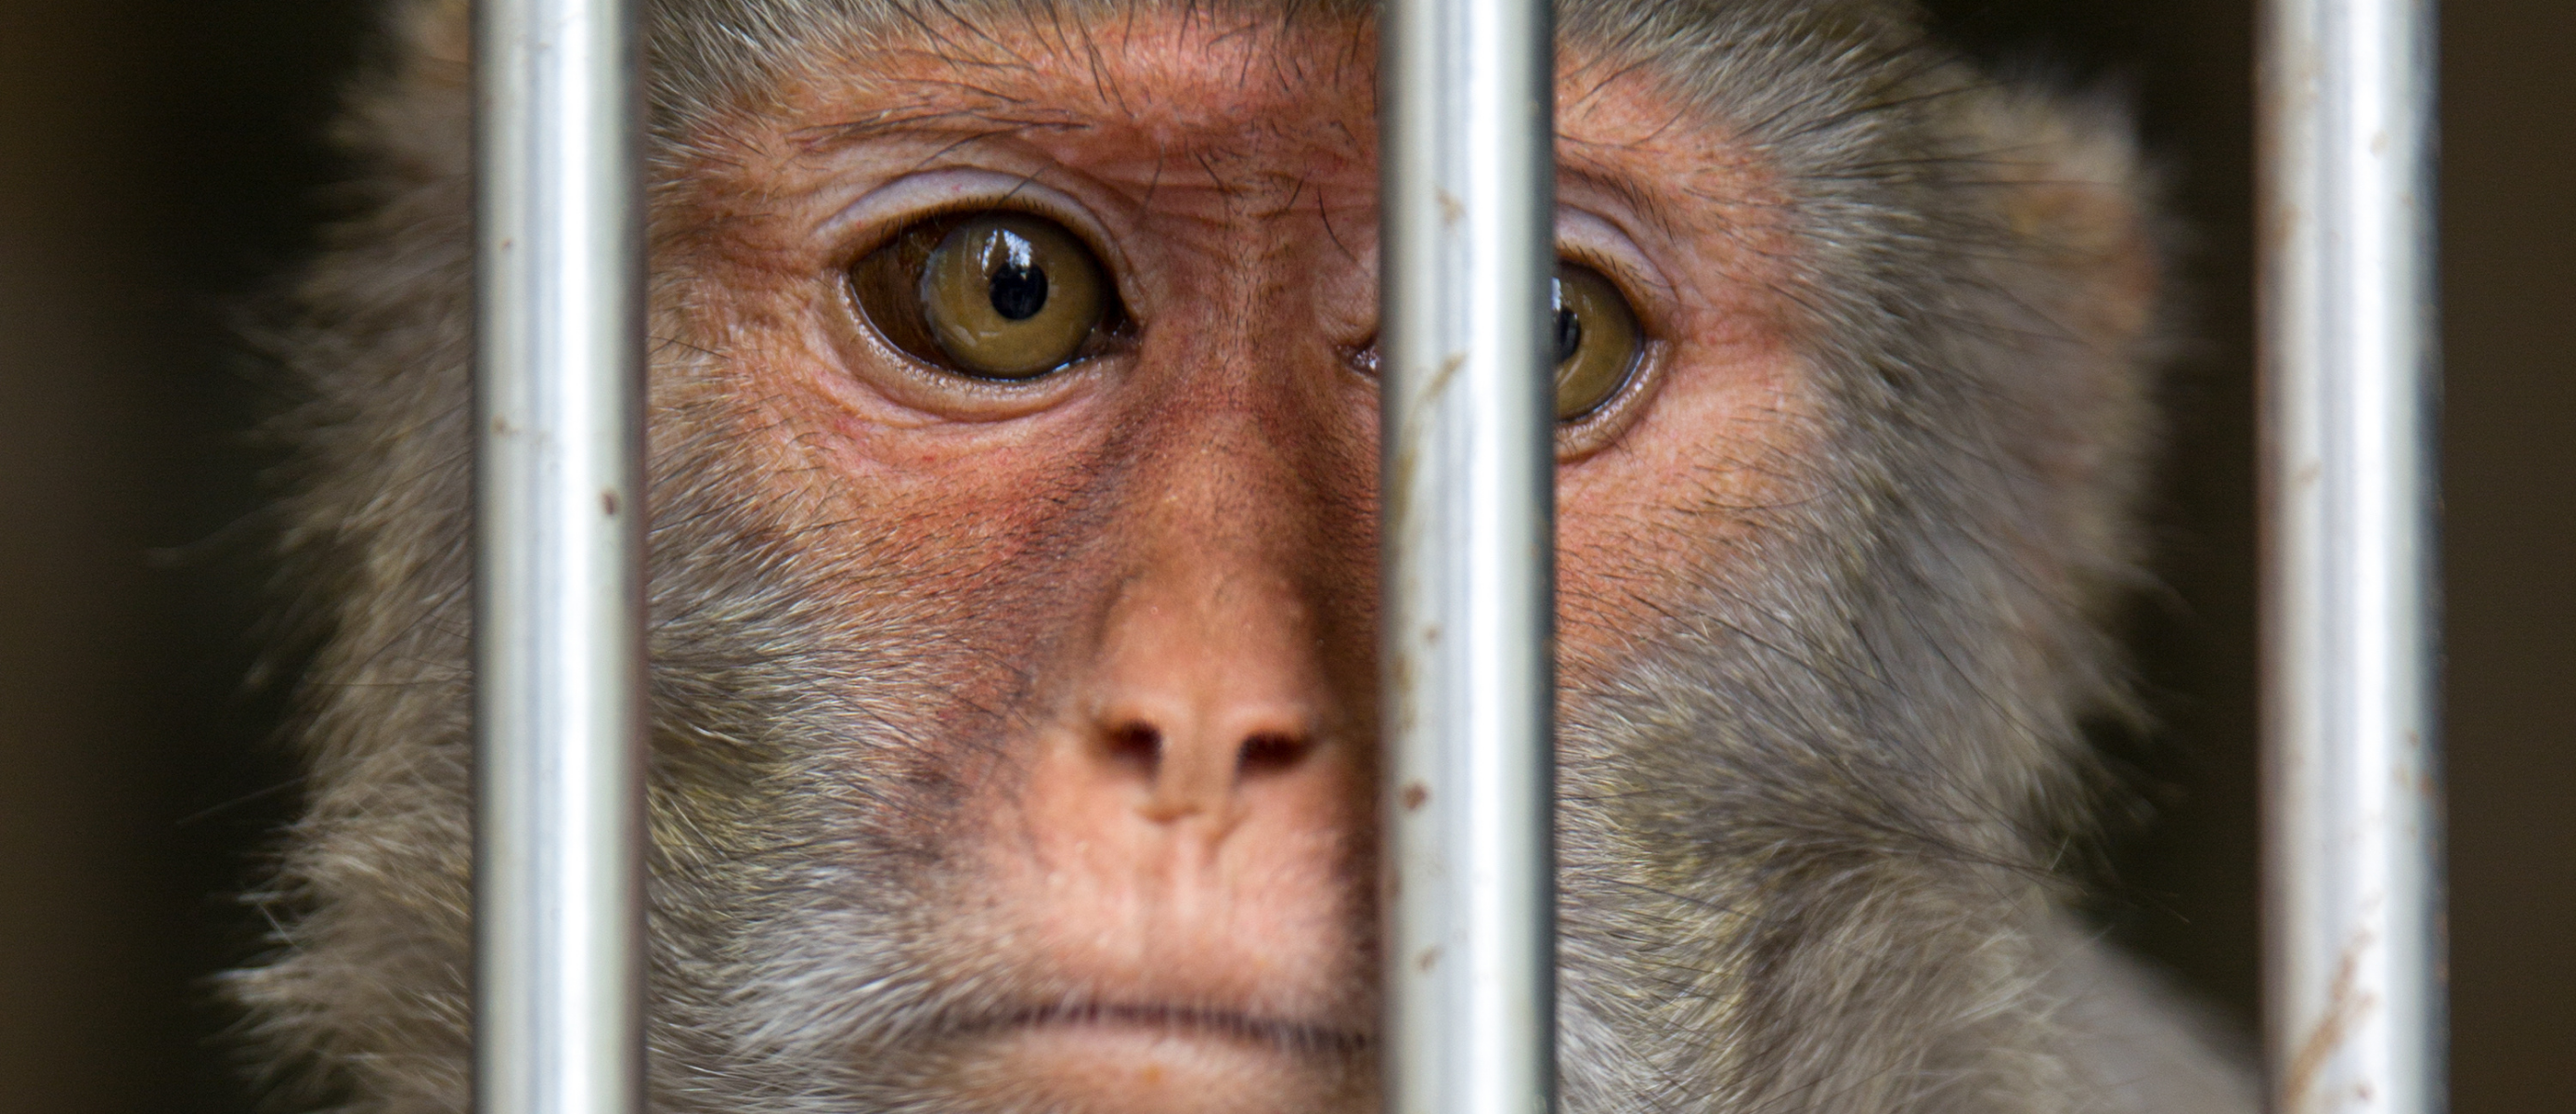 Image of a caged macaque